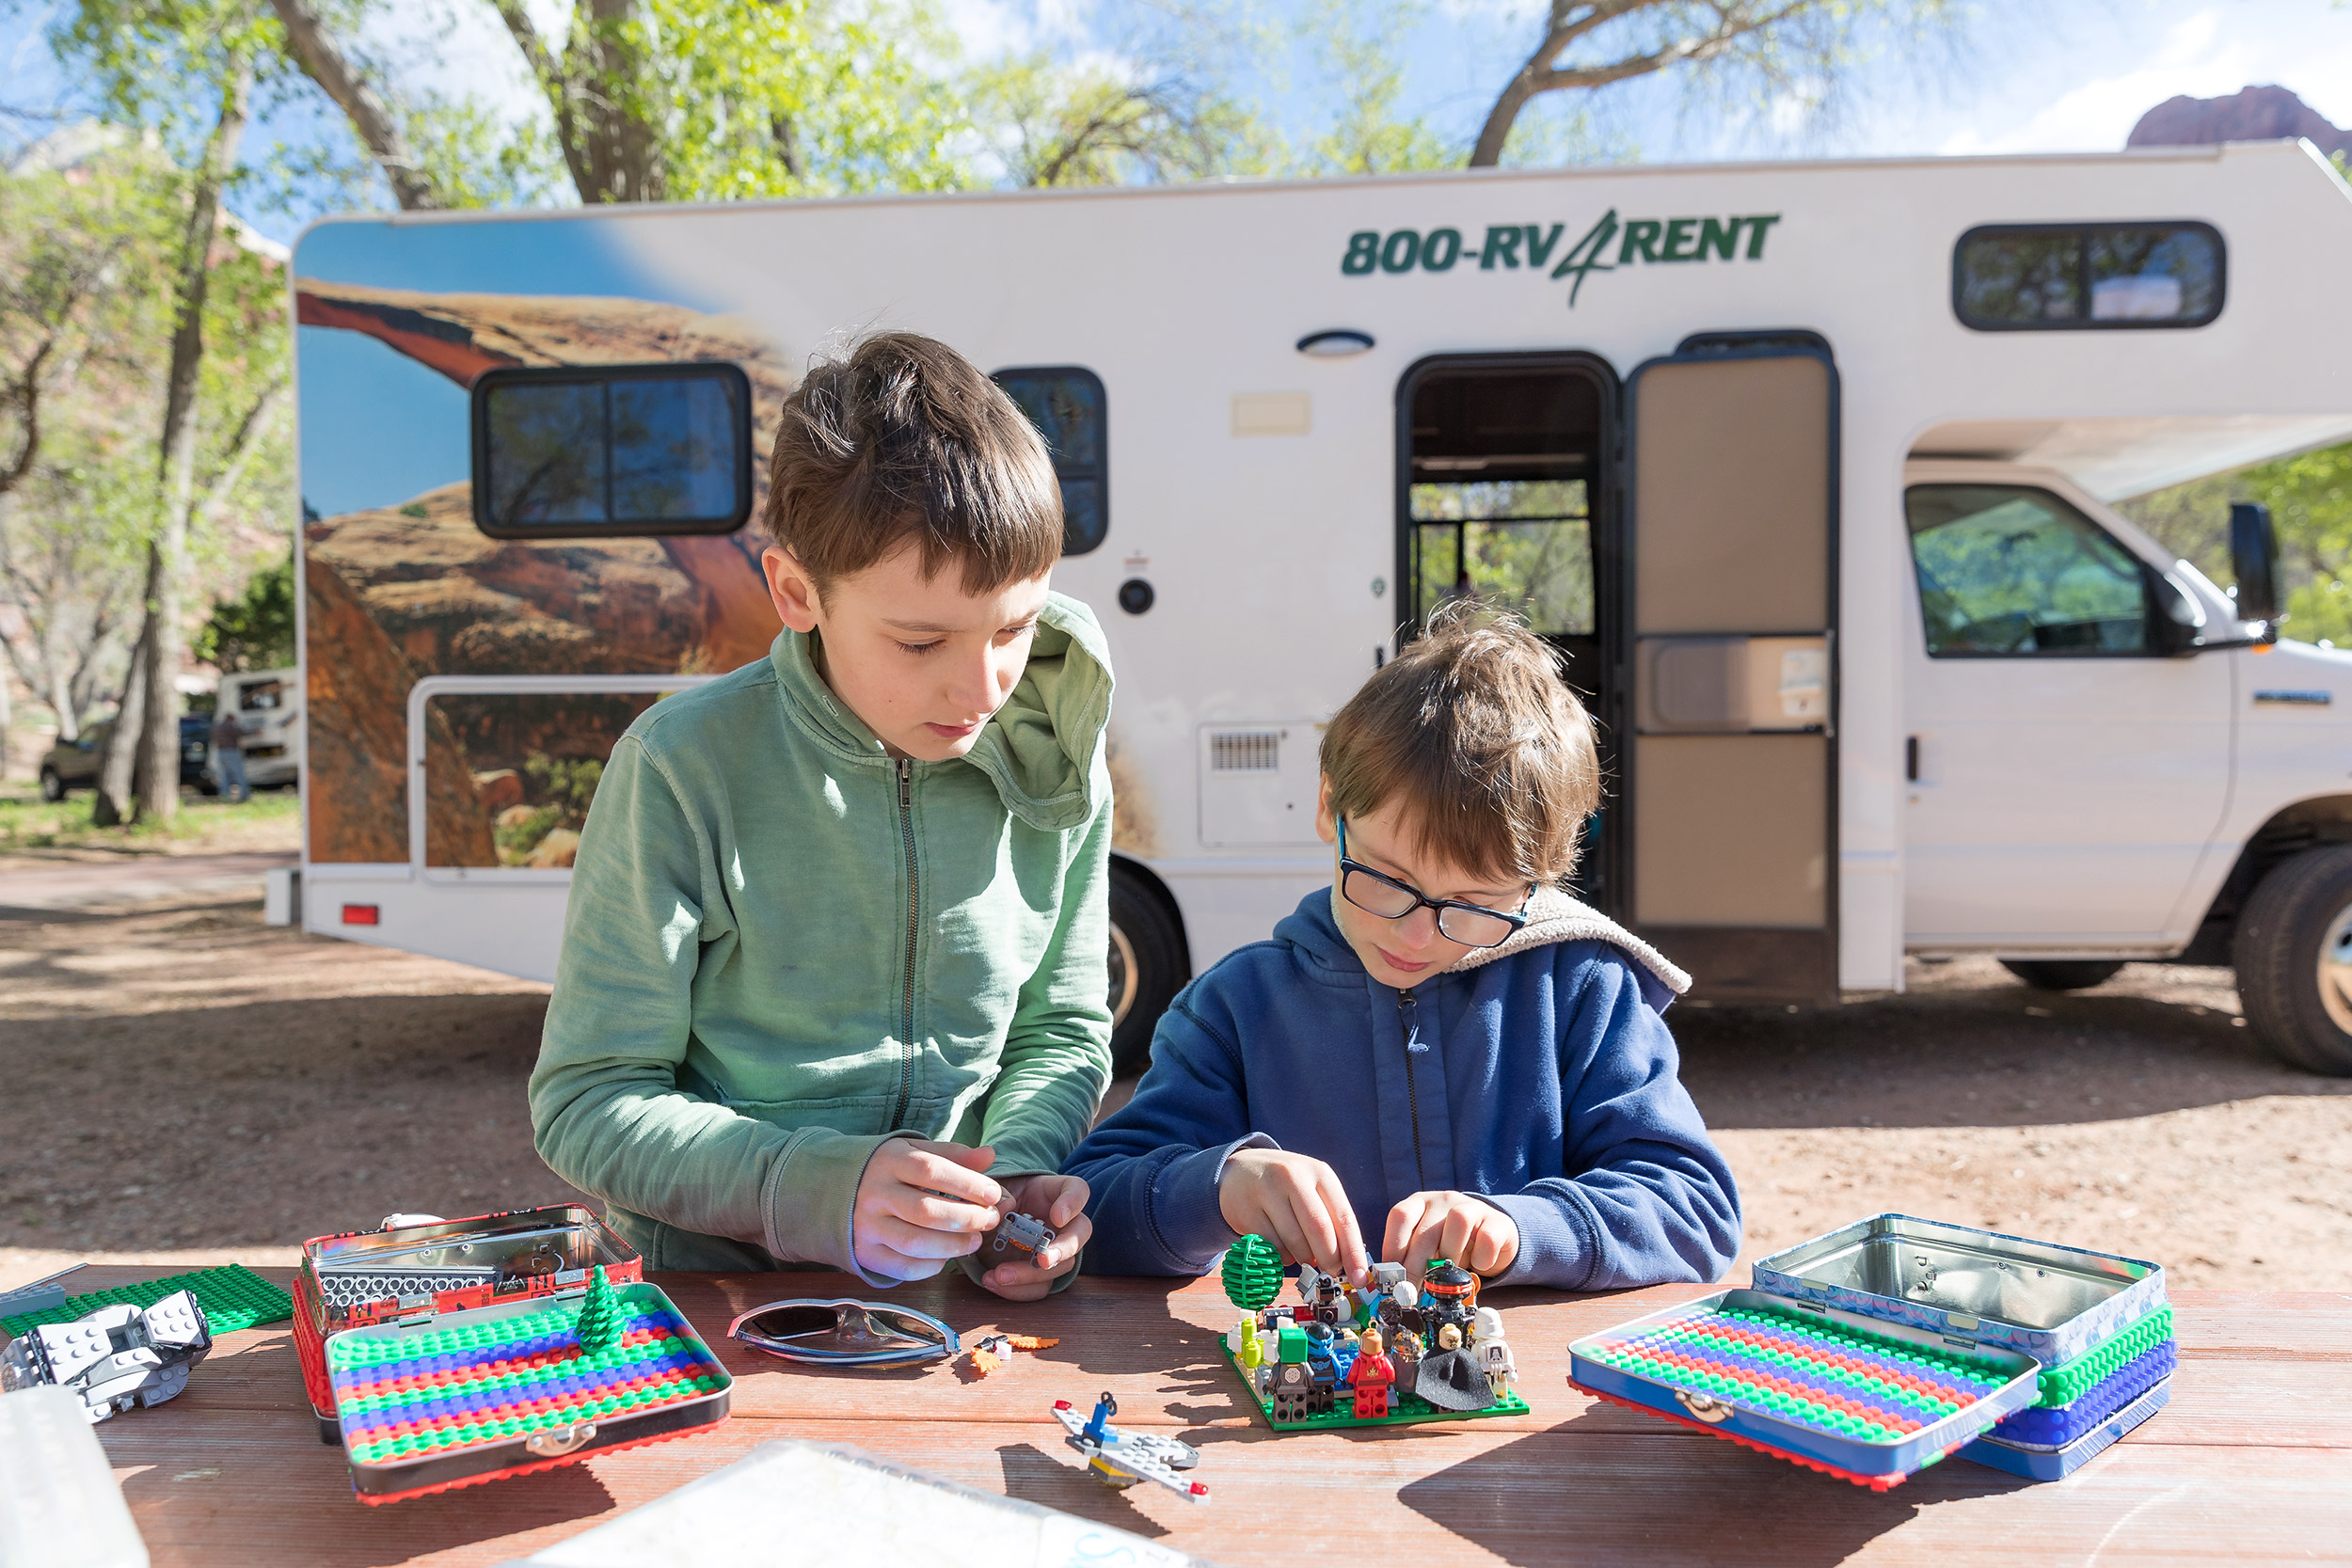 NATLPARKING_travel_rv_adventure_legos_boys_zionnationalpark_2157_WB